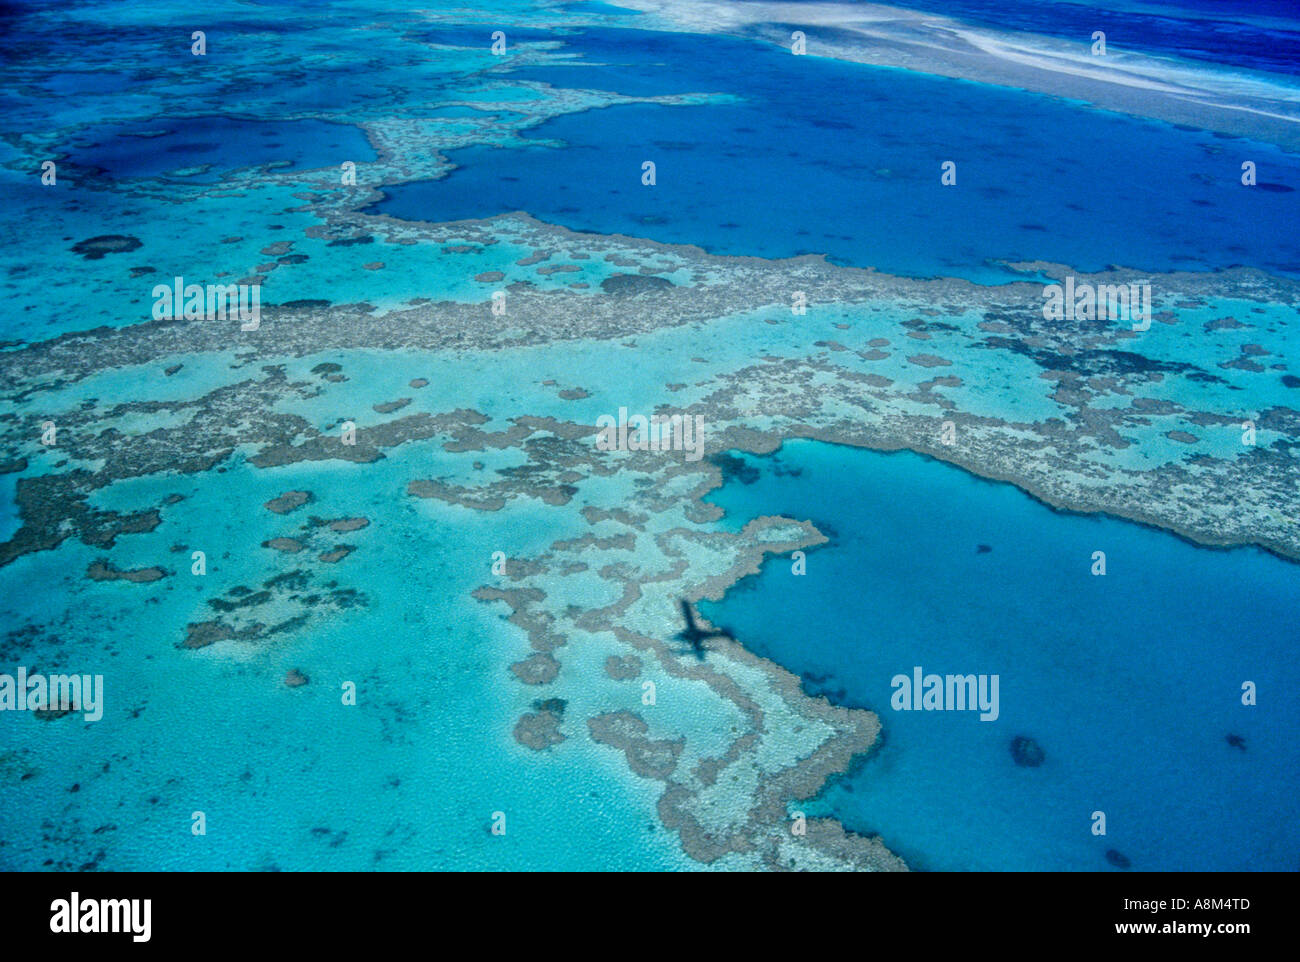 Coral near Hardy Reef Whitsunday Islands National Park Great Barrier Reef Queensland Australia horizontal  Stock Photo